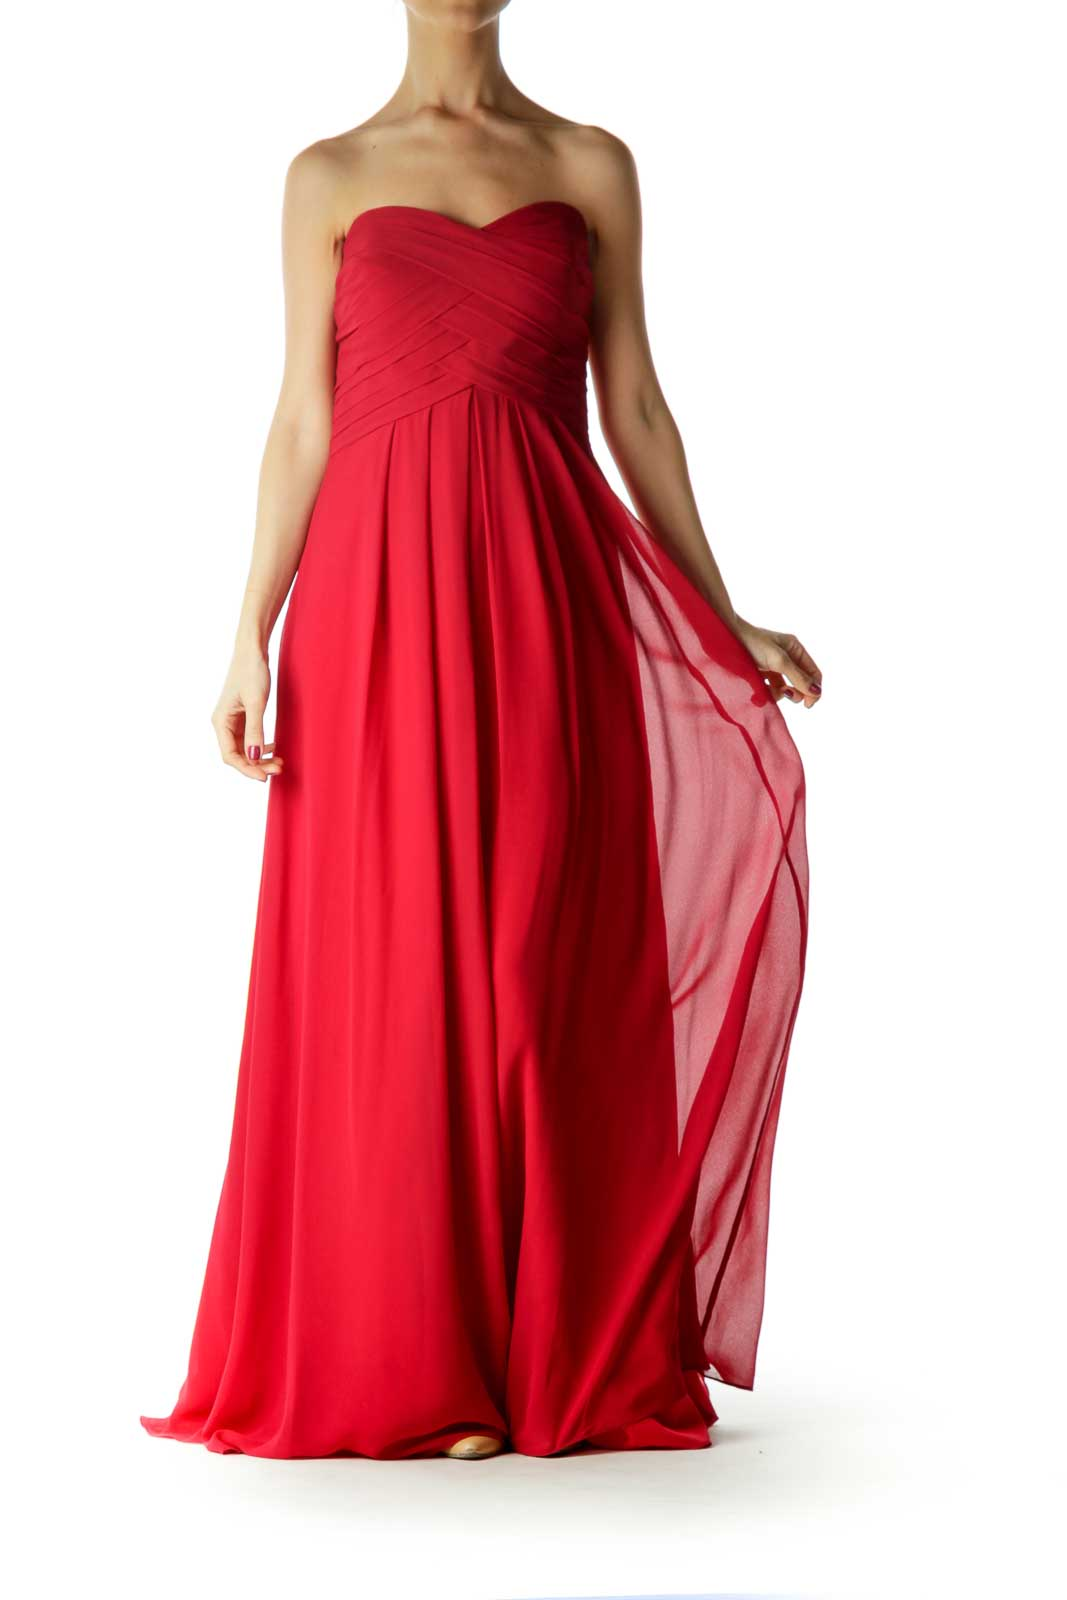 Red Sweetheart Neckline Evening Dress Front